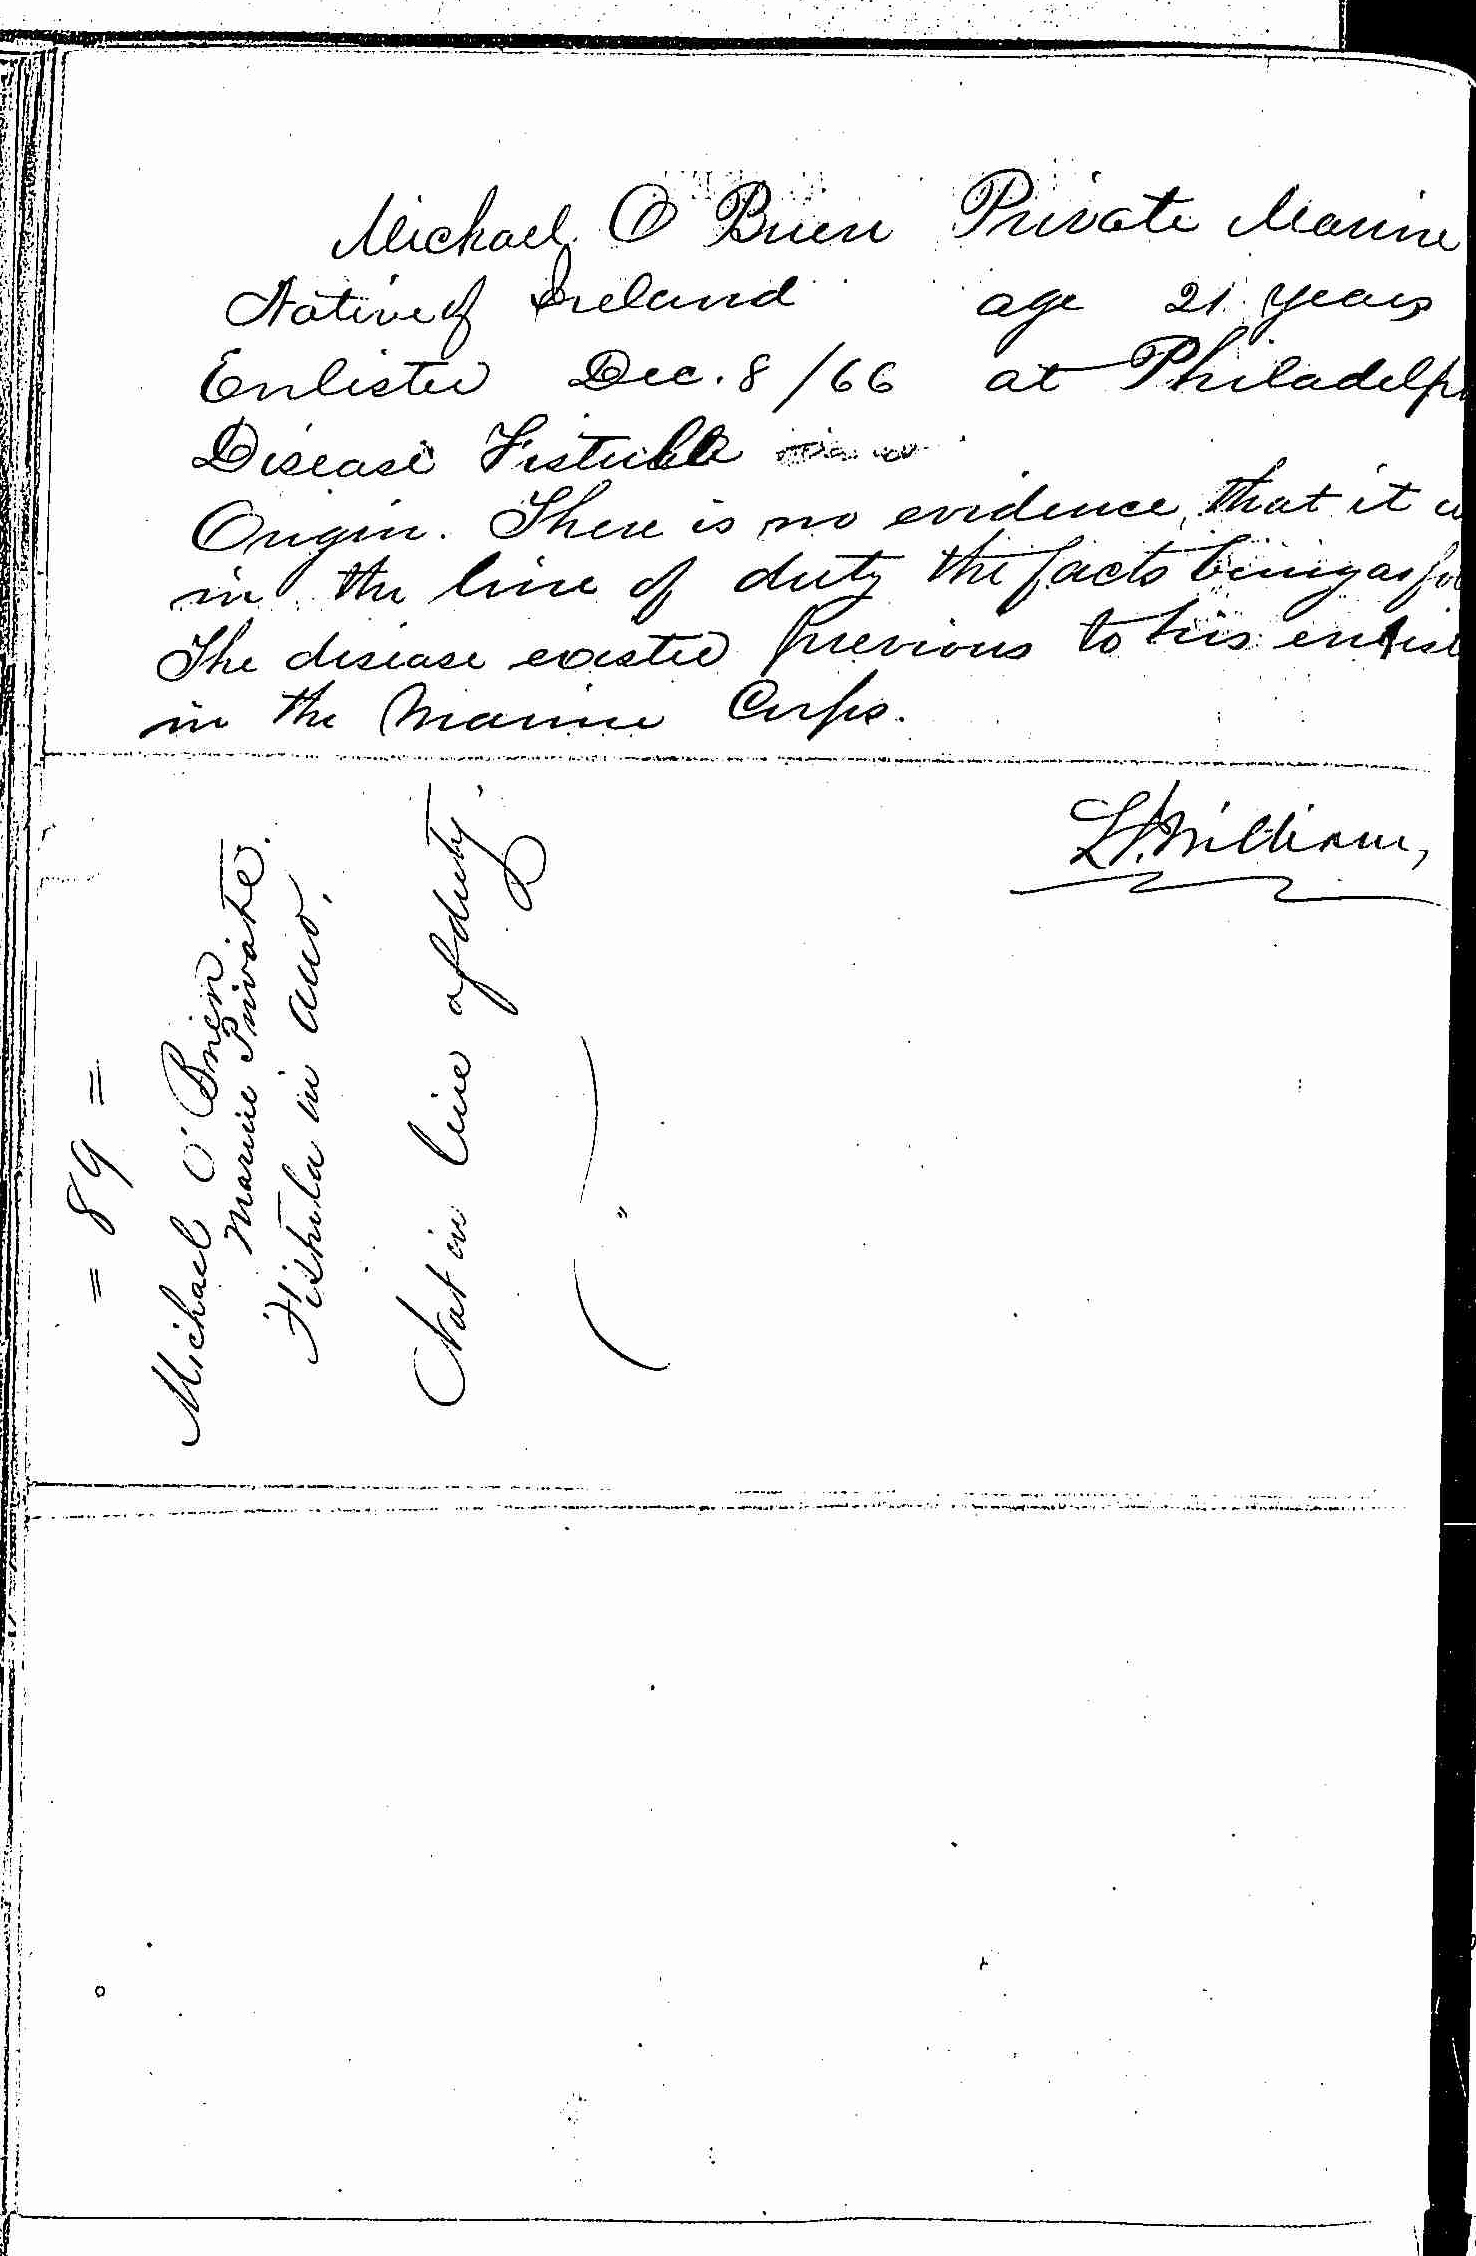 Entry for Michael O'Brien (page 2 of 2) in the log Hospital Tickets and Case Papers - Naval Hospital - Washington, D.C. - 1865-68